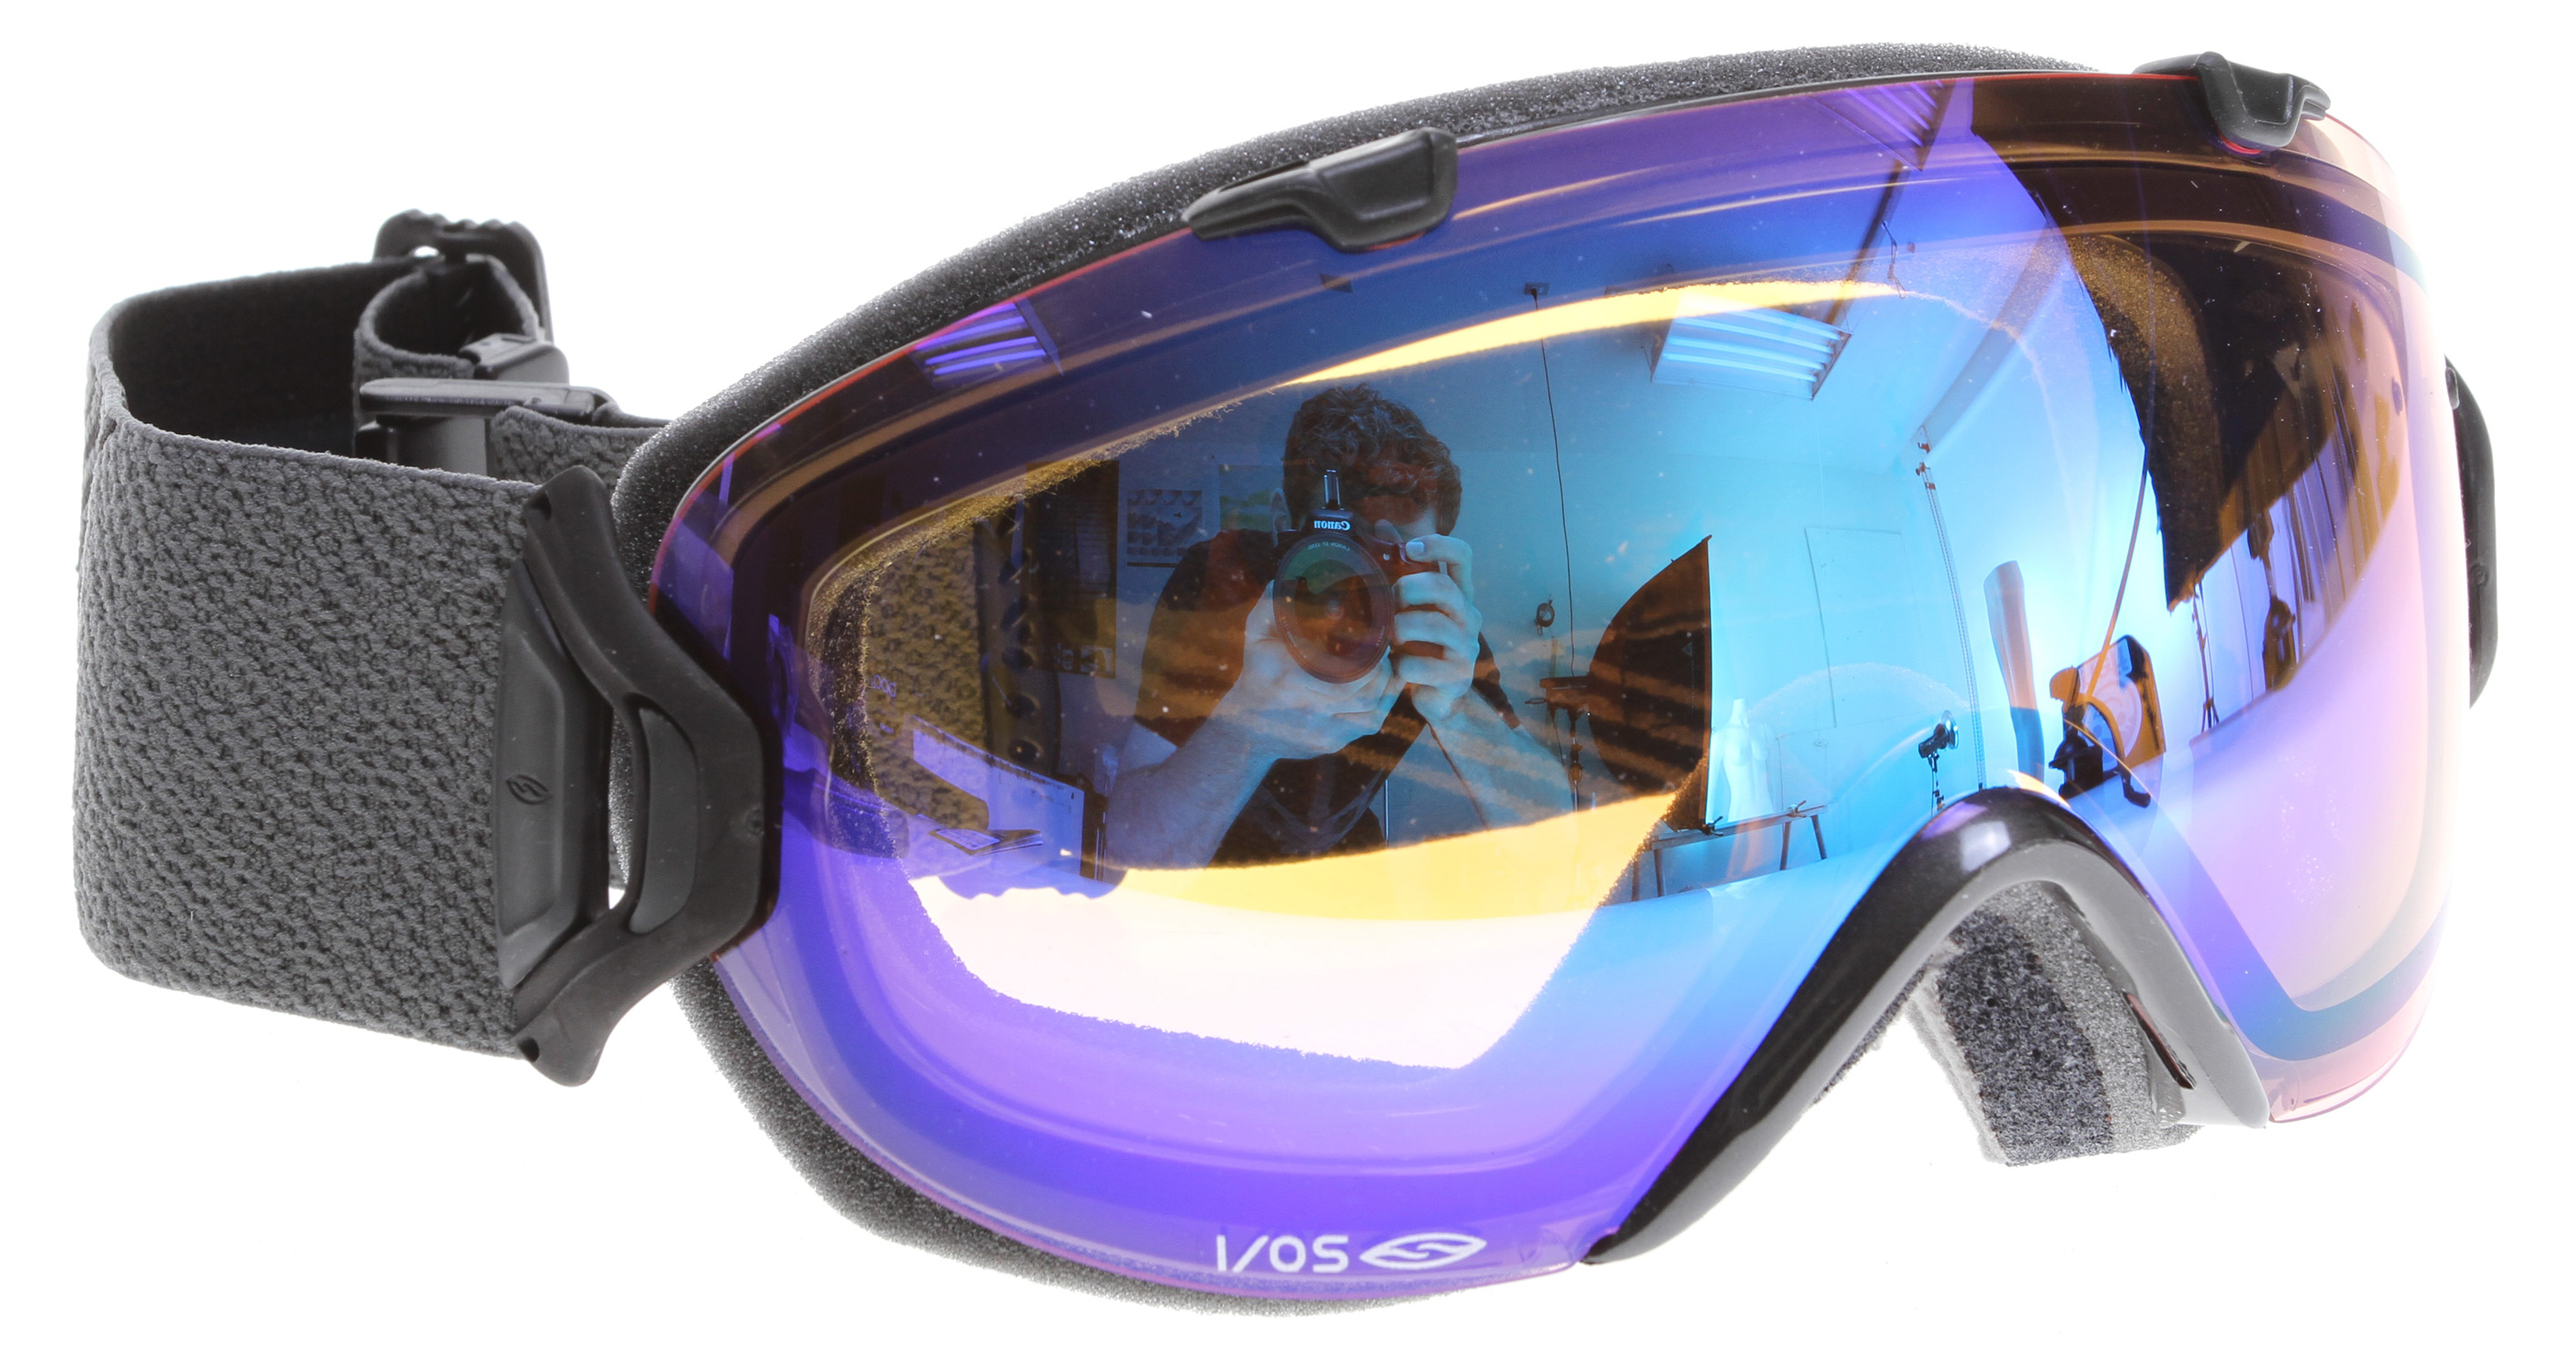 Snowboard Rimless interchangeability designed specifically for smaller faces. the fluid lines and revolutionary outrigger locking mechanism of the i/os key off the successes of the i/o to bring rimless interchangeability to an even broader audience. equipped with smith's revolutionary new 5X Anti-Fog inner lens, the i/os provides anti-fog performance never before seen in a compact goggle. Key Features of the Smith I/Os Snowboard Goggles: Small/Medium Fit Quick Release Lens System Spherical, Carbonic-X Lens with TLT Optics 5X Anti-Fog Inner Lens Patented vaporator Lens Technology with Porex Filter Includes Two Performance Mirror Lenses Ultra-Wide, Silicone Backed Strap QuickFit Strap Adjustment System with Clip Buckle 3-Layer, DriWix Face Foam Helmet Compatible Includes Microfiber Goggle Bag with Replacement Lens Sleeve - $123.95